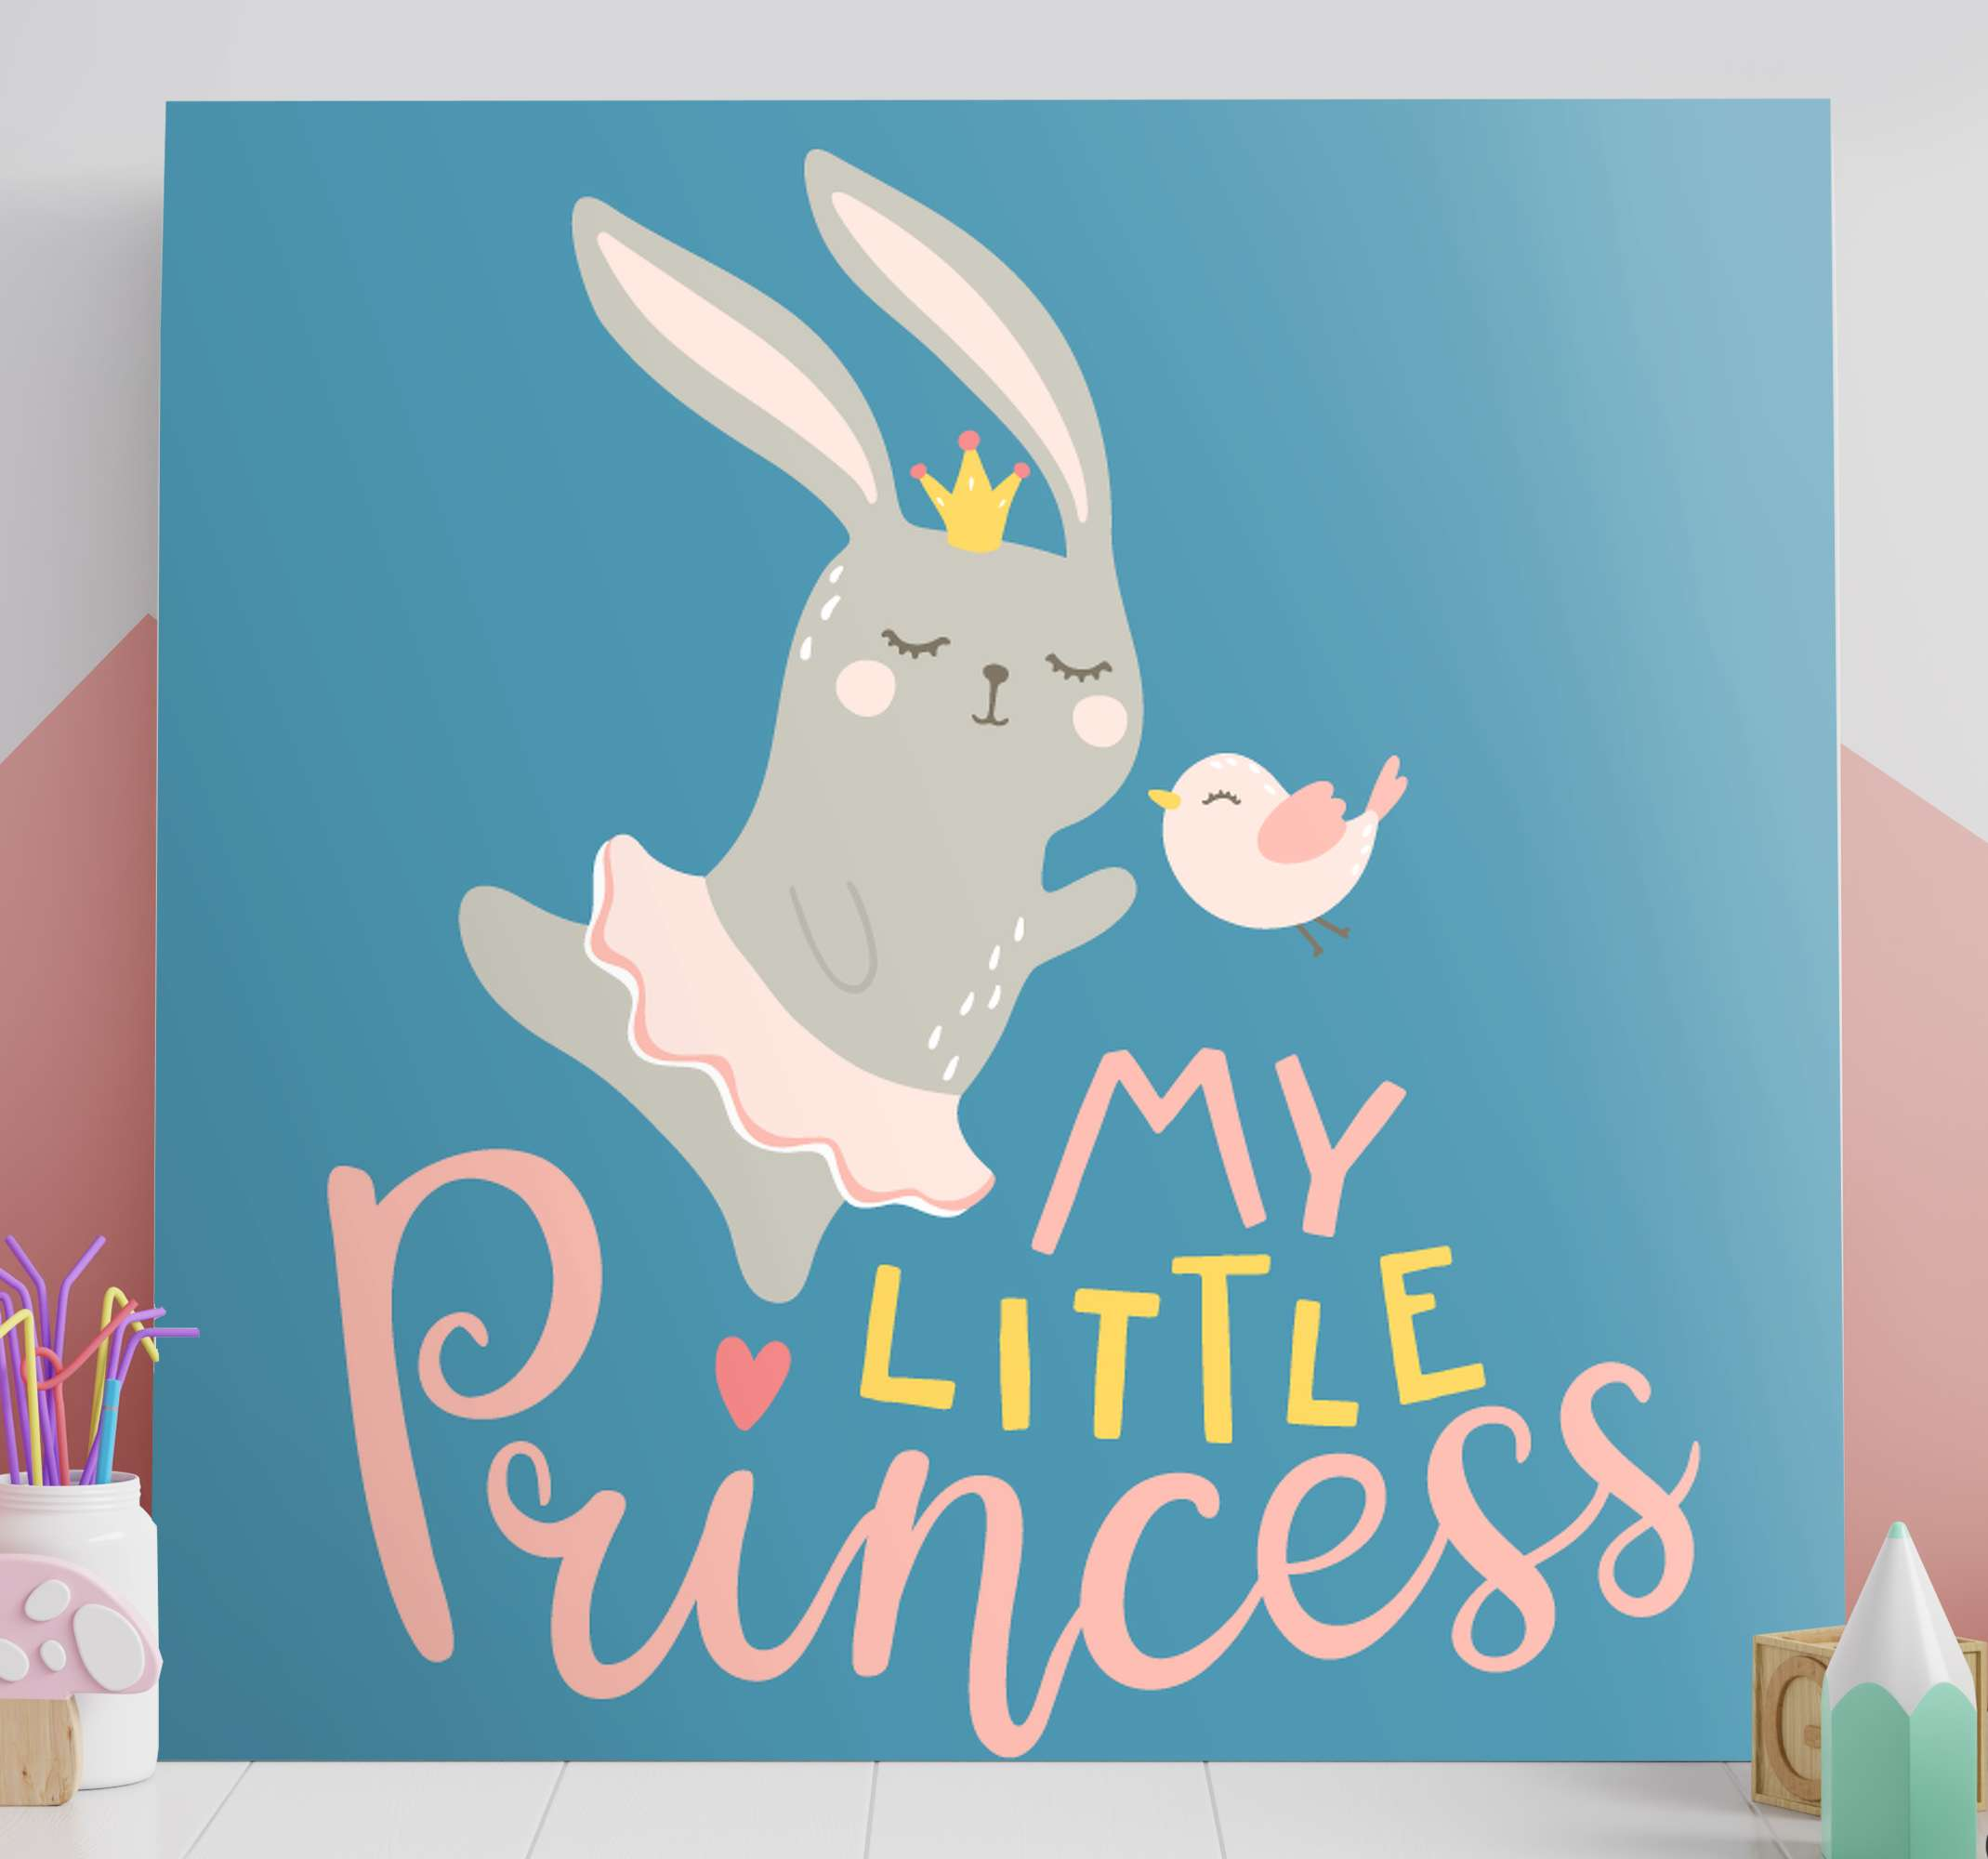 TenStickers. bebe conejo frase mi princesa wall pictures for nursery. Adorable animal inspired nursery canvas art that your little one will love. Sign up today for 10% off your first order with us.